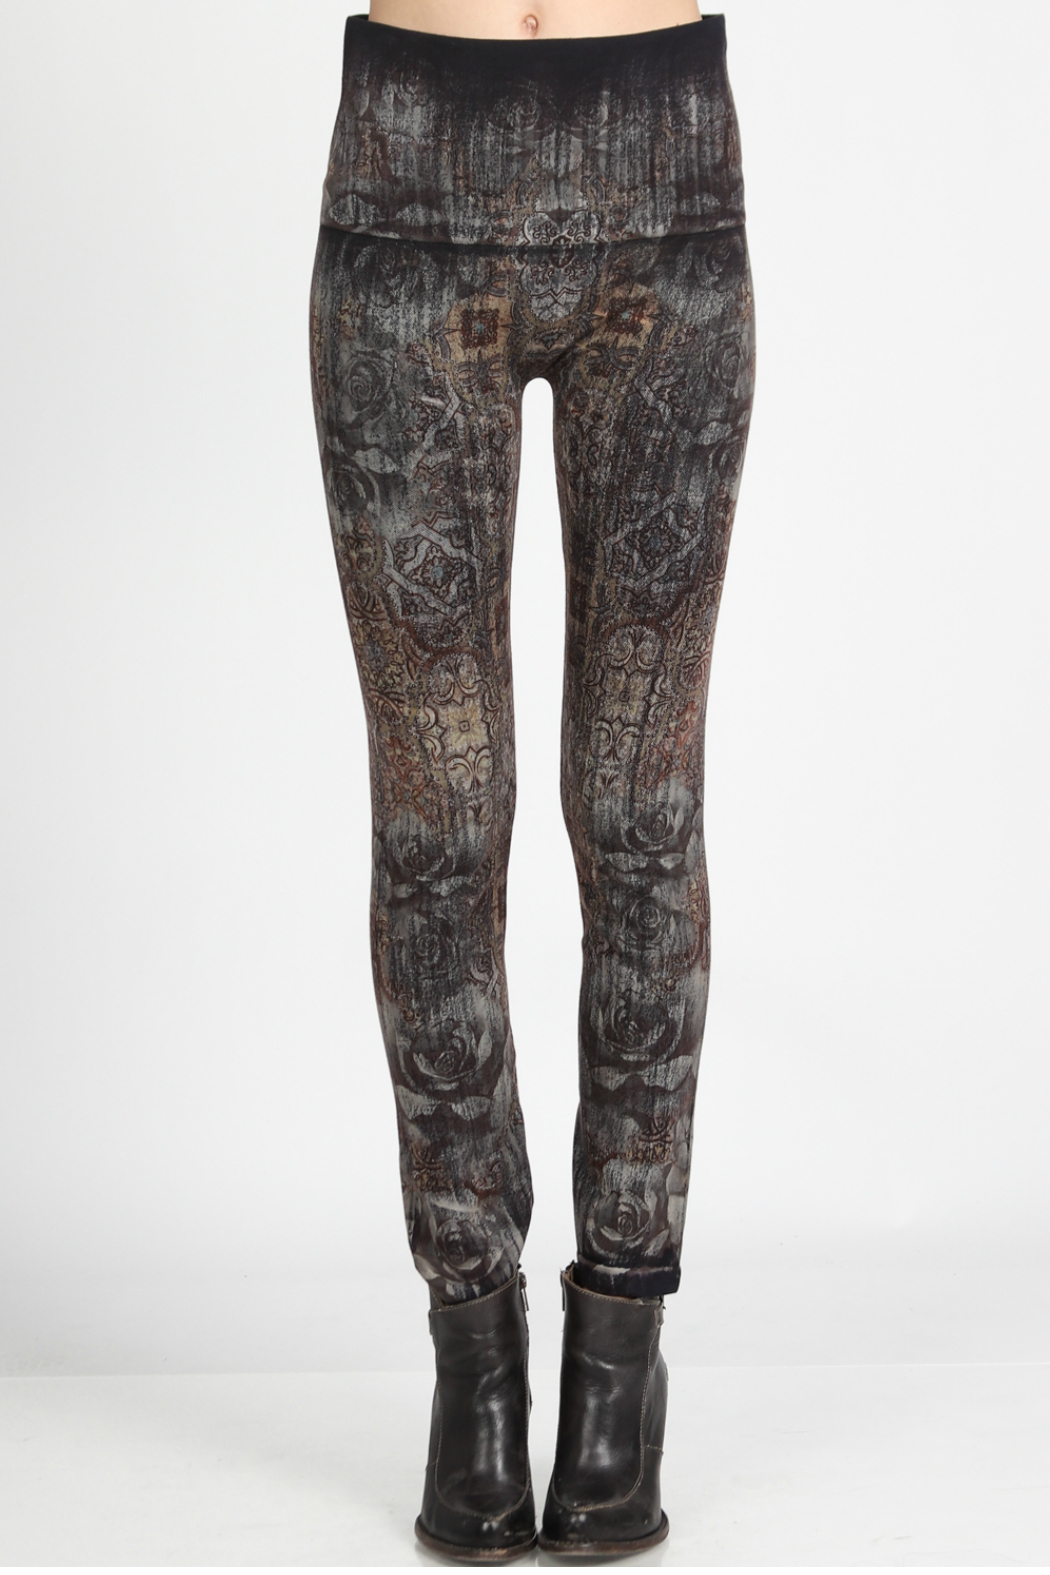 M.Rena high waist leggings with moroccan tile print - Main Image